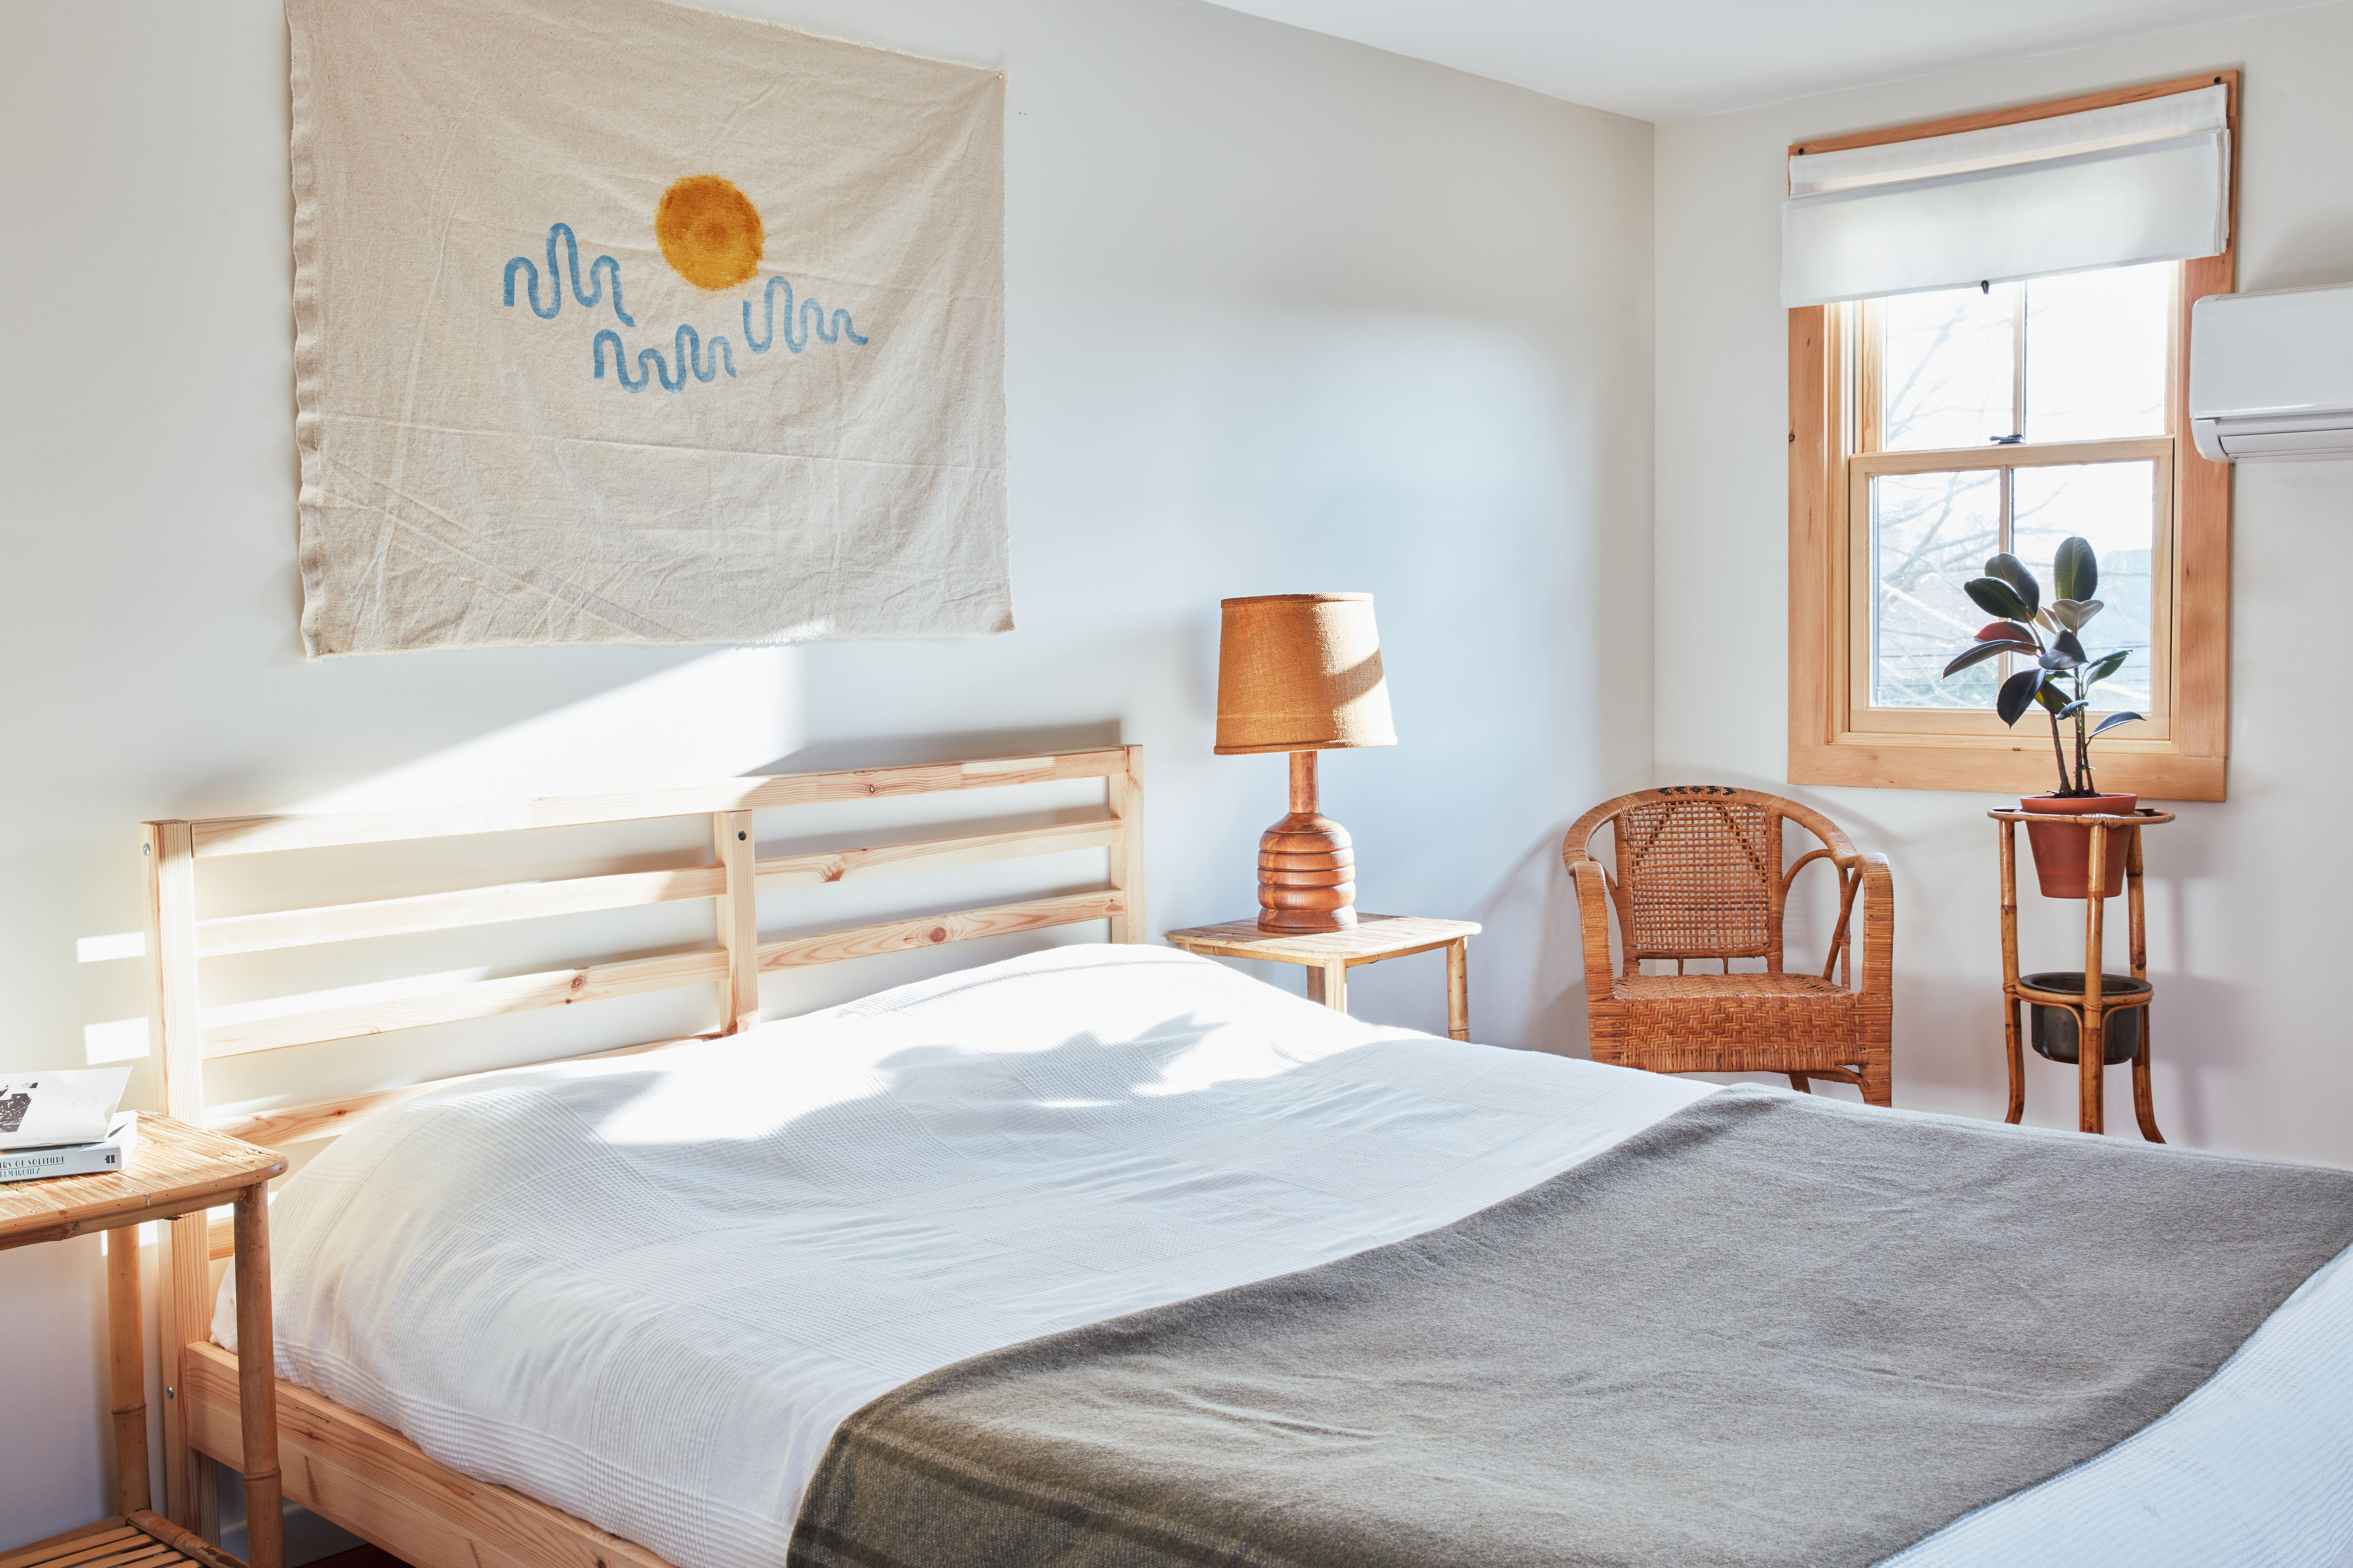 Summer Sounds A Pair of Musicians Effortlessly Cool Redone Cape in Westerly RI Available on Airbnb The sunny main bedroom. &#8\2\20;All of the furniture is thrifted, aside from the Ikea bed frame,&#8\2\2\1; Sean says. &#8\2\20;We didn&#8\2\17;t shun choosing certain things from Ikea. My&#8\2\17;s mother just retired from working in business development at Ikea in Sweden and Athens, Greece, for over \20 years, so it&#8\2\17;s in the family.&#8\2\2\1;